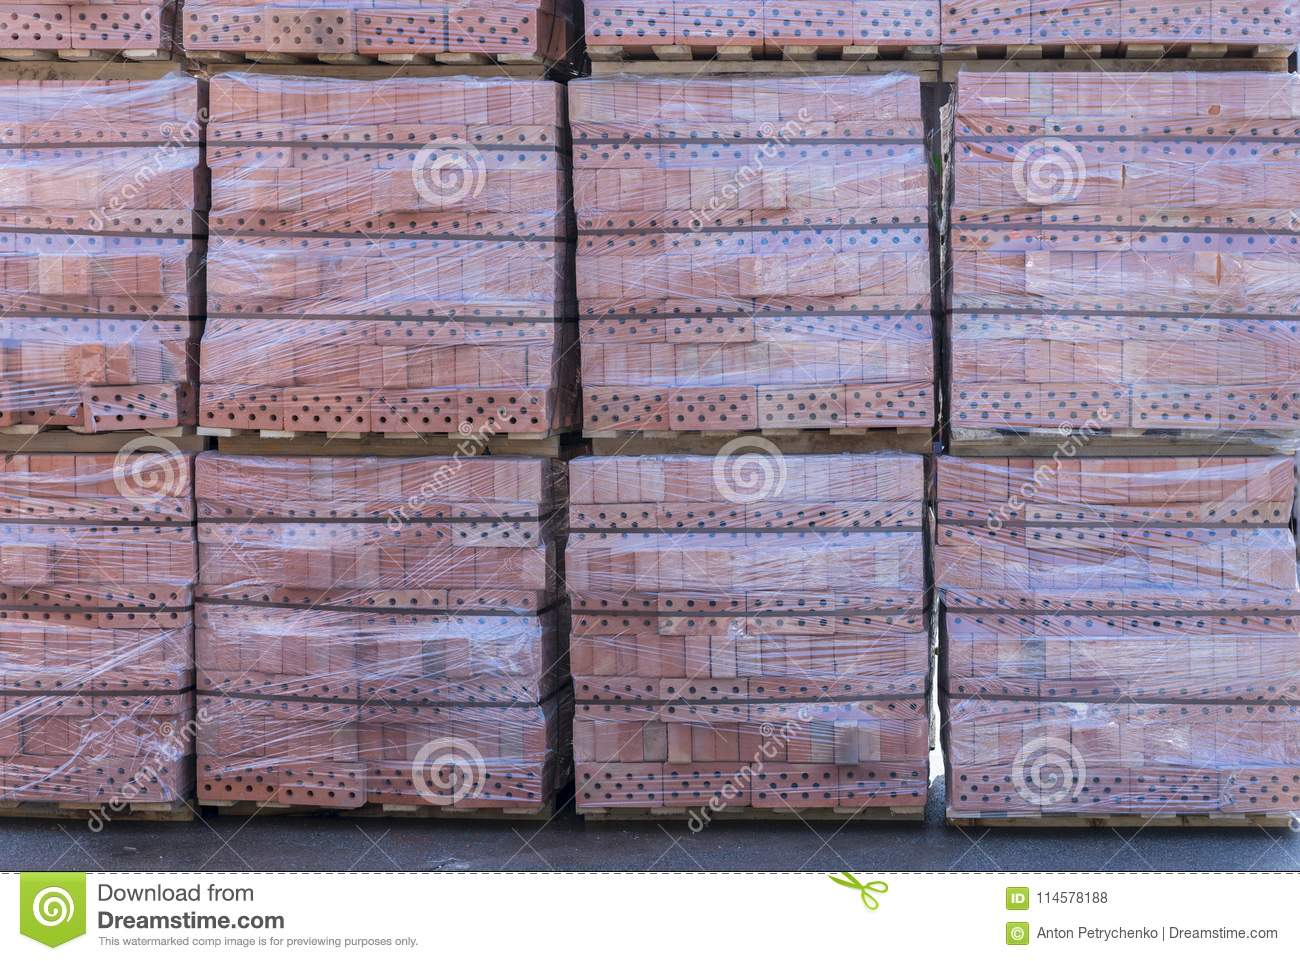 Clay brick s pallet at the storage yard. pallets with bricks in the building store. Racks with brick. Masonry, stonework.